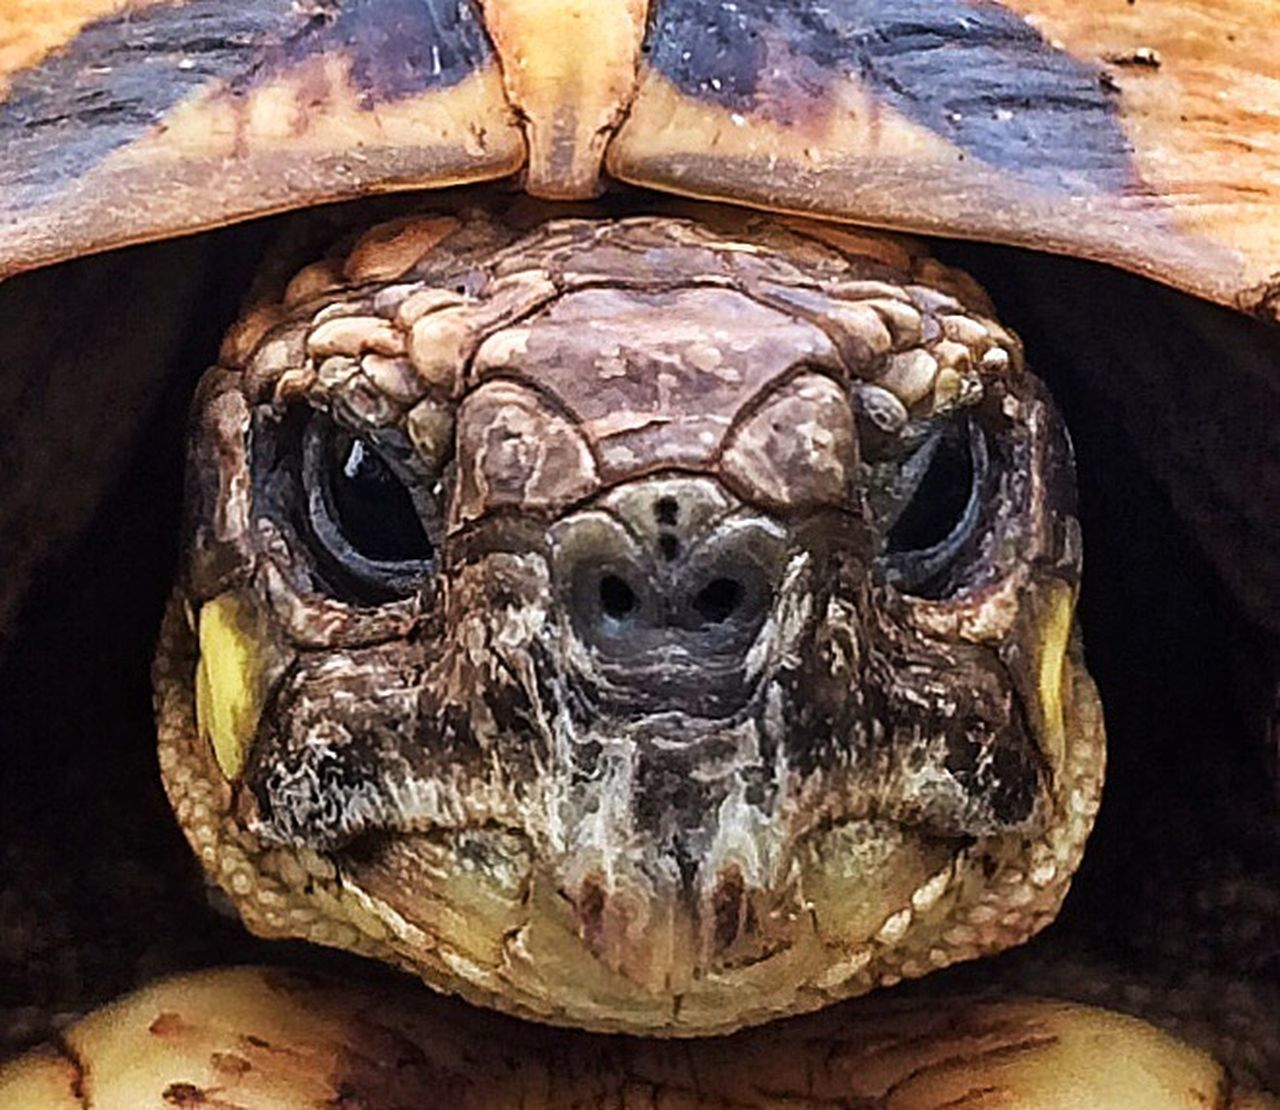 reptile, tortoise, animal wildlife, animal body part, tortoise shell, animals in the wild, animal head, close-up, one animal, animal themes, looking at camera, portrait, no people, day, nature, outdoors